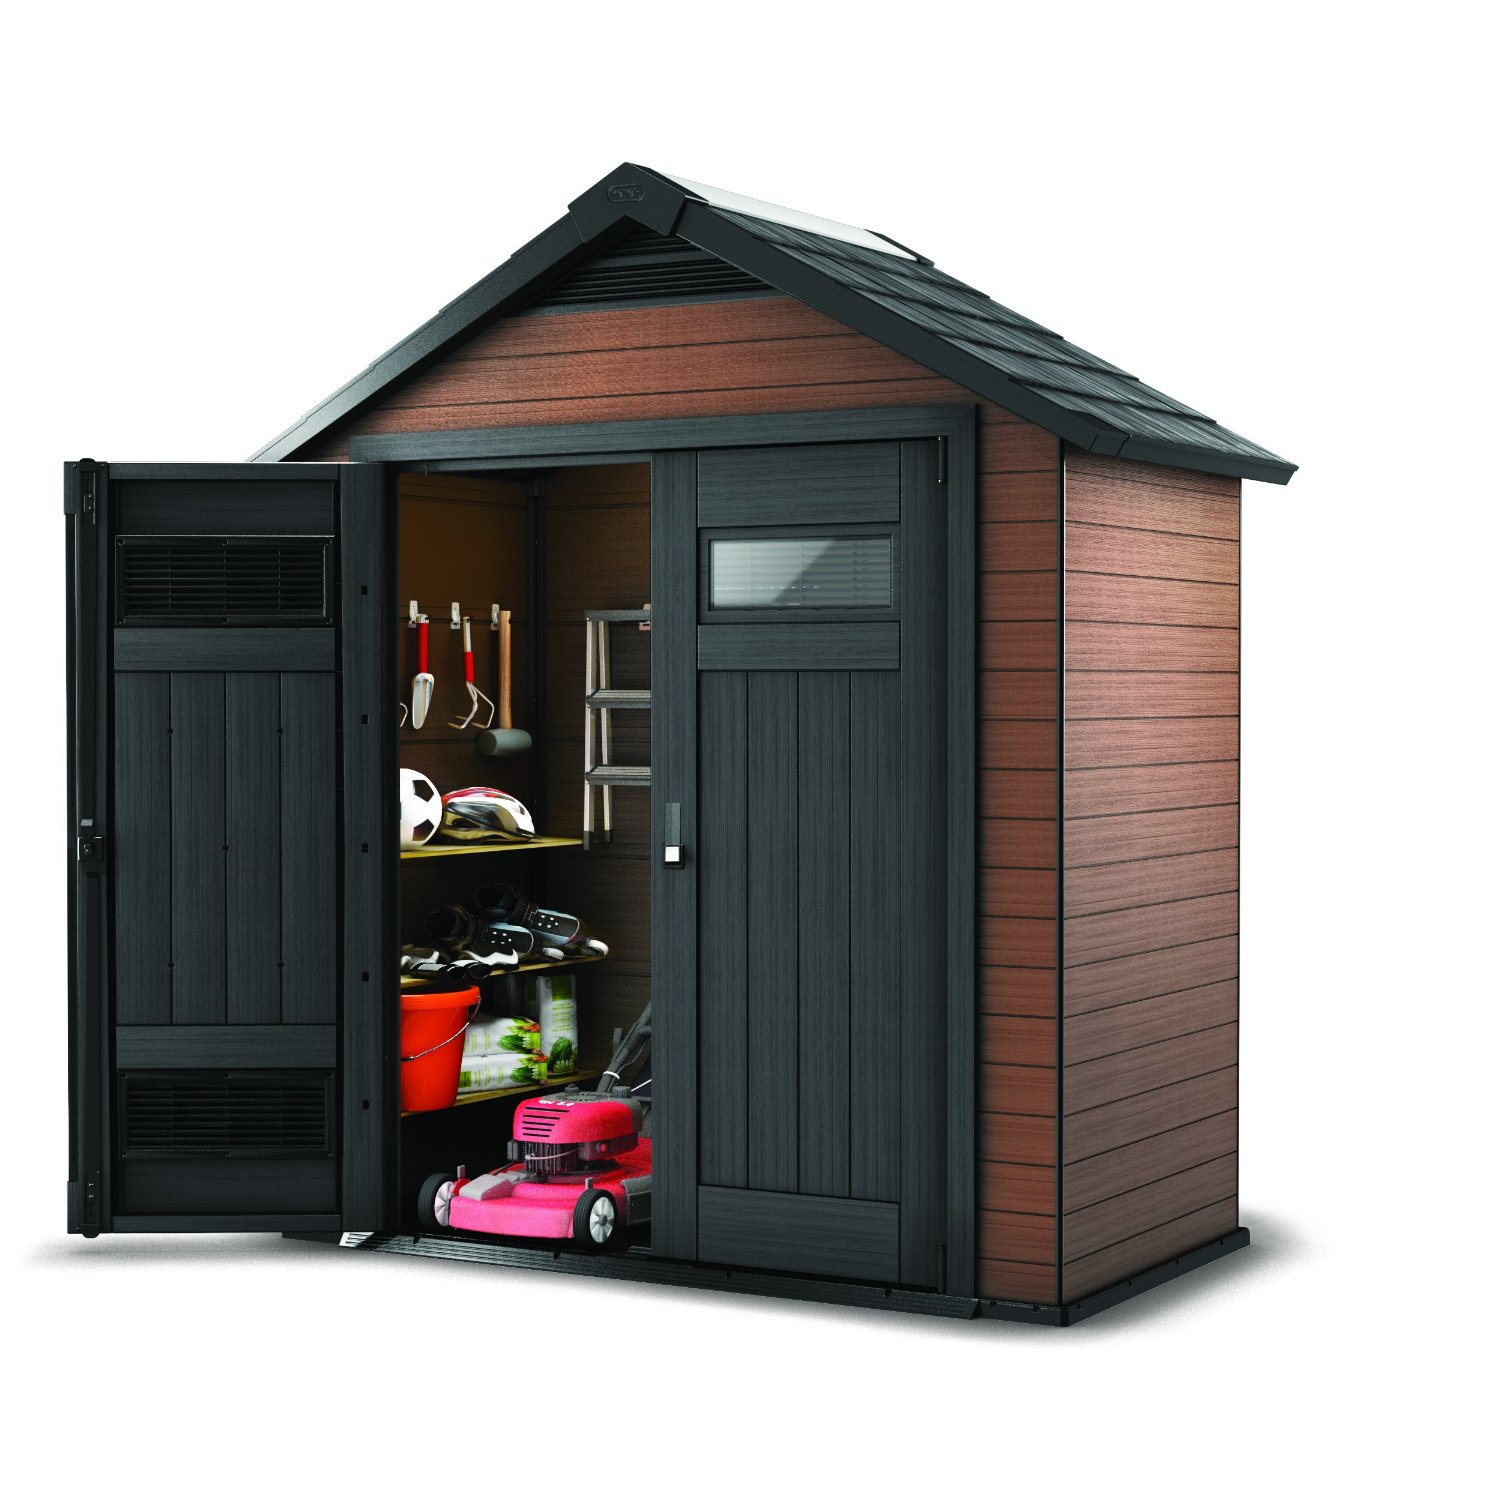 keter-fusion-754 – Quality Plastic Sheds